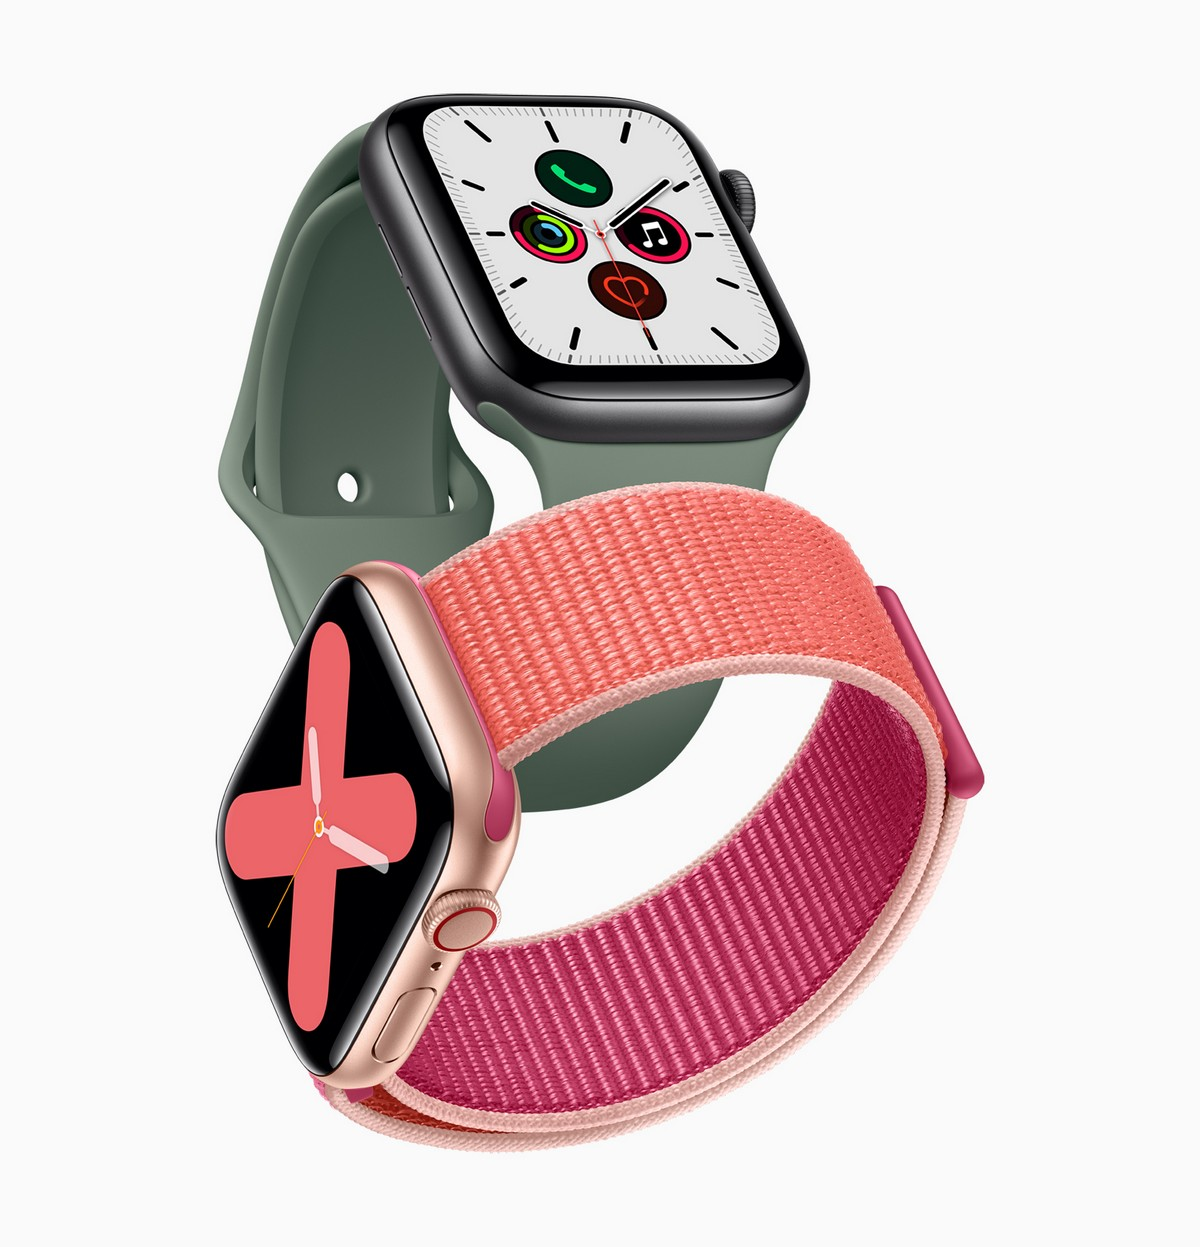 Apple Watch Study Wants To Help Detect Potential Early Heart Failure